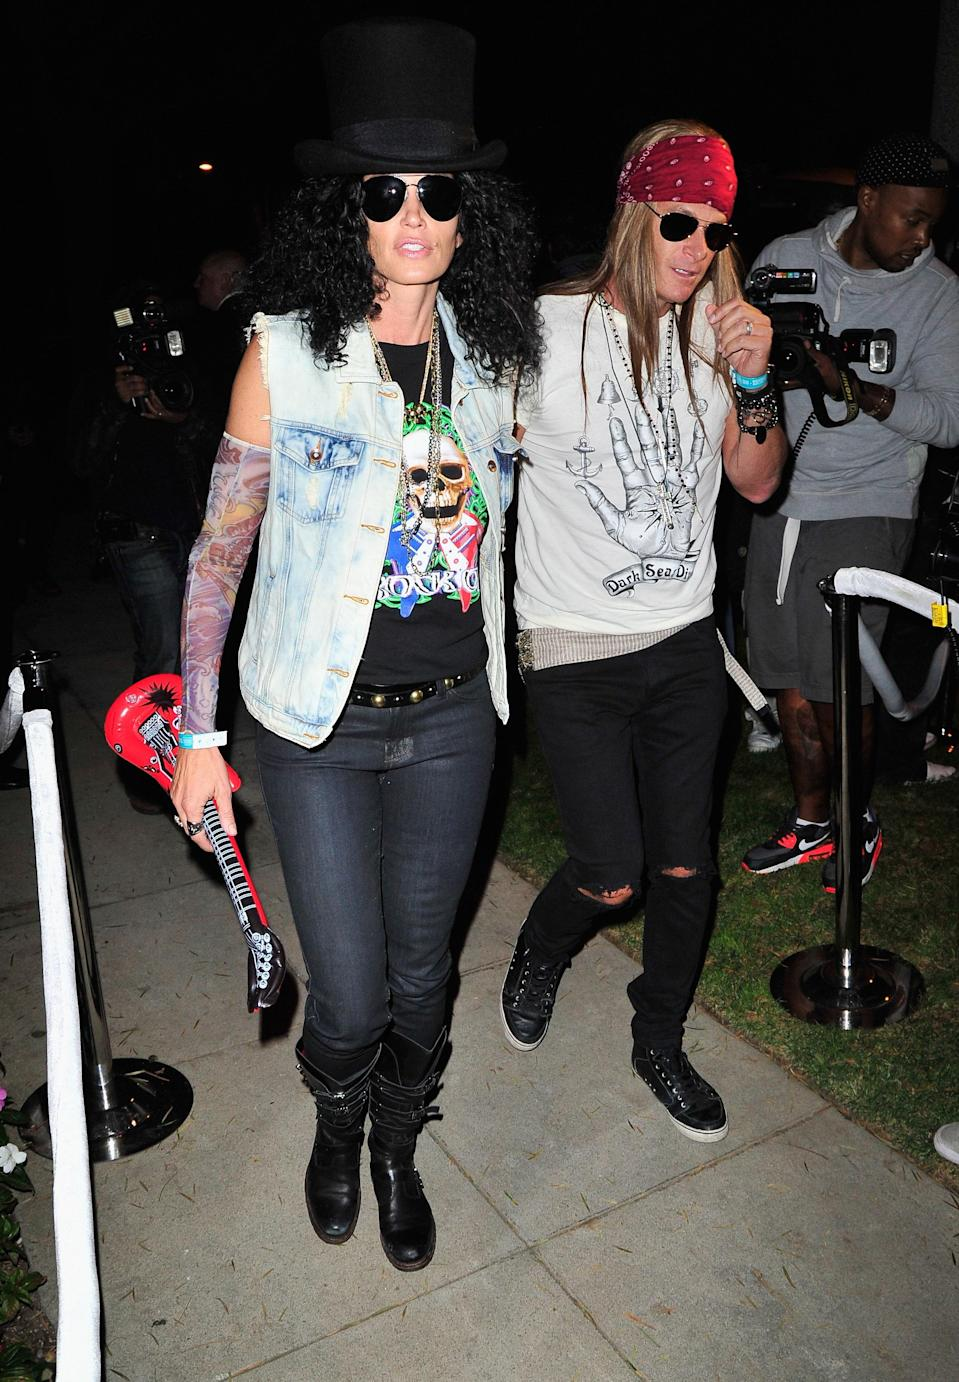 The famous couple looked incredible as one the Guns n' Roses musicians in 2013.